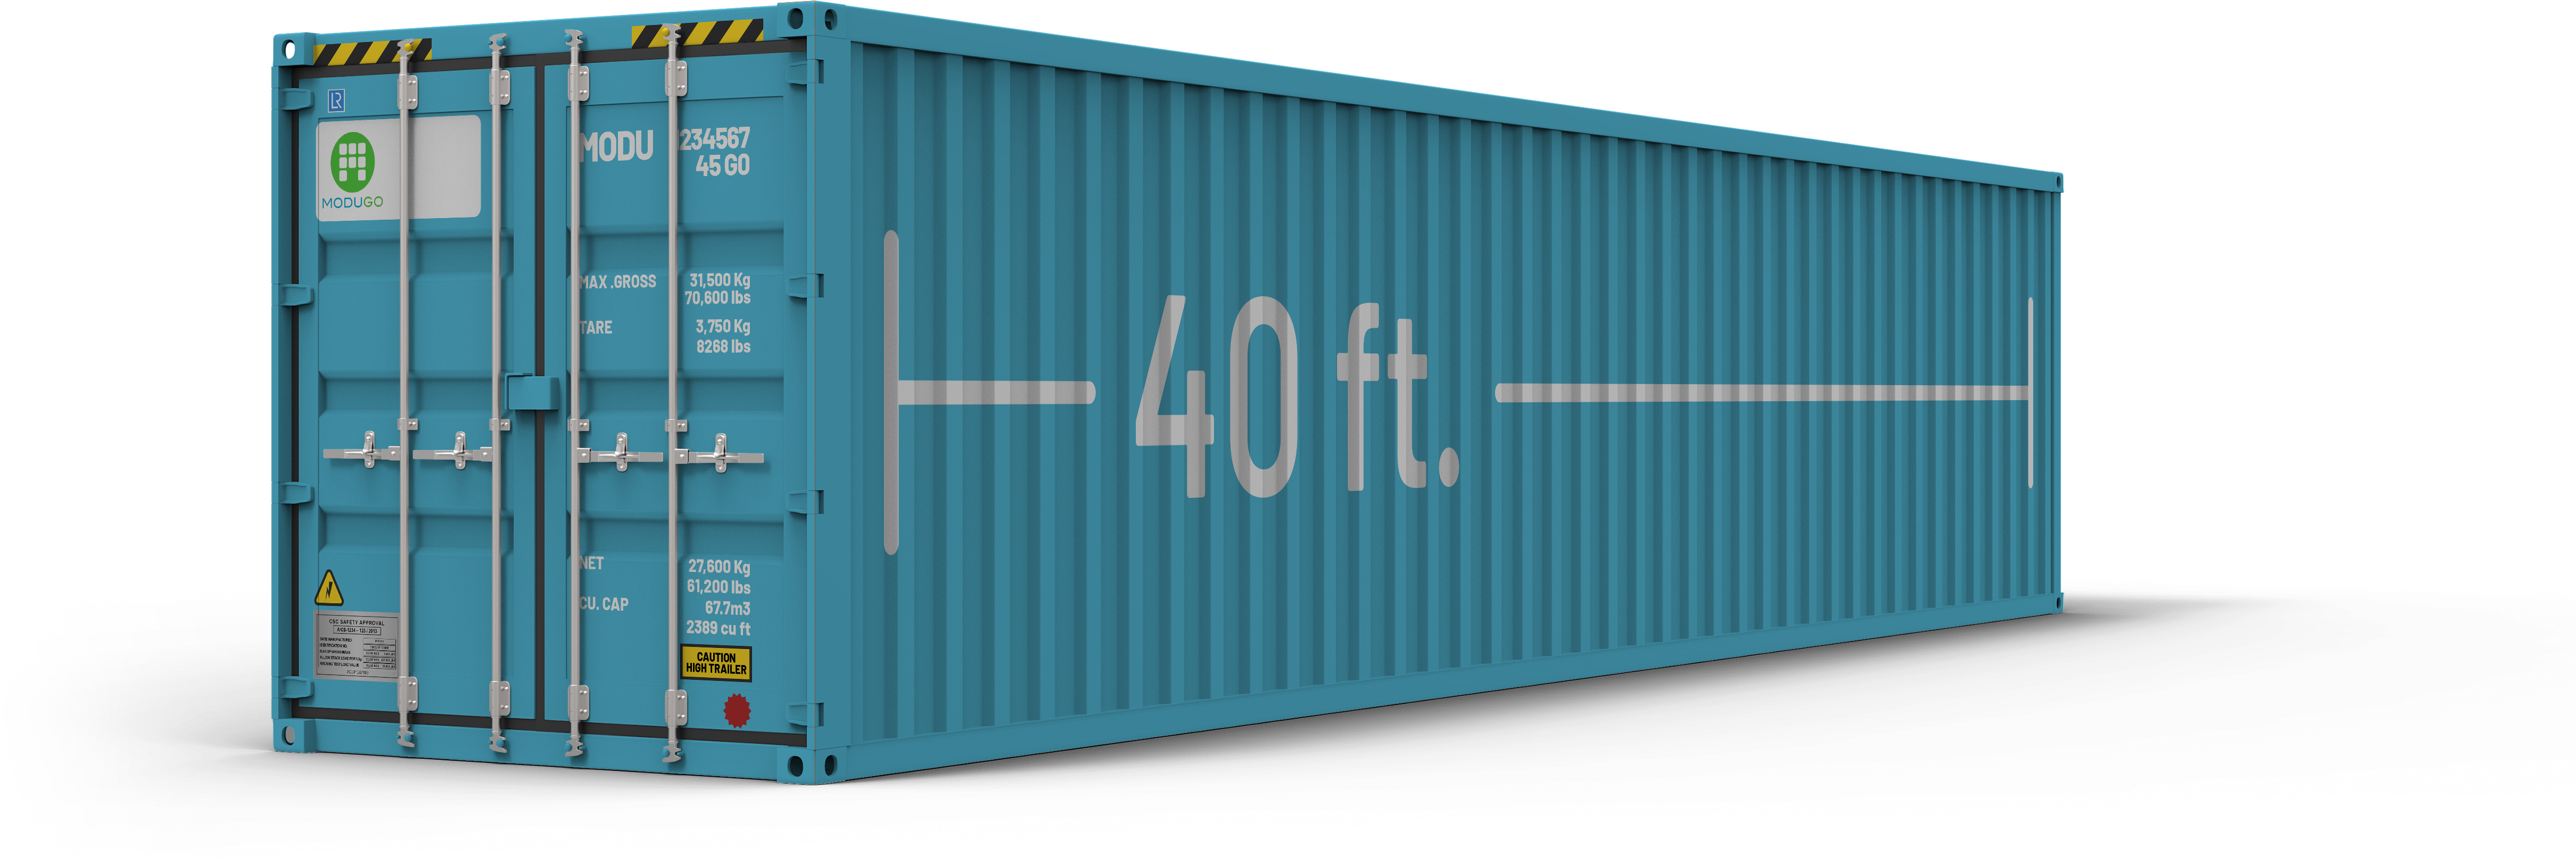 Container 40 foot-Hight-Cube